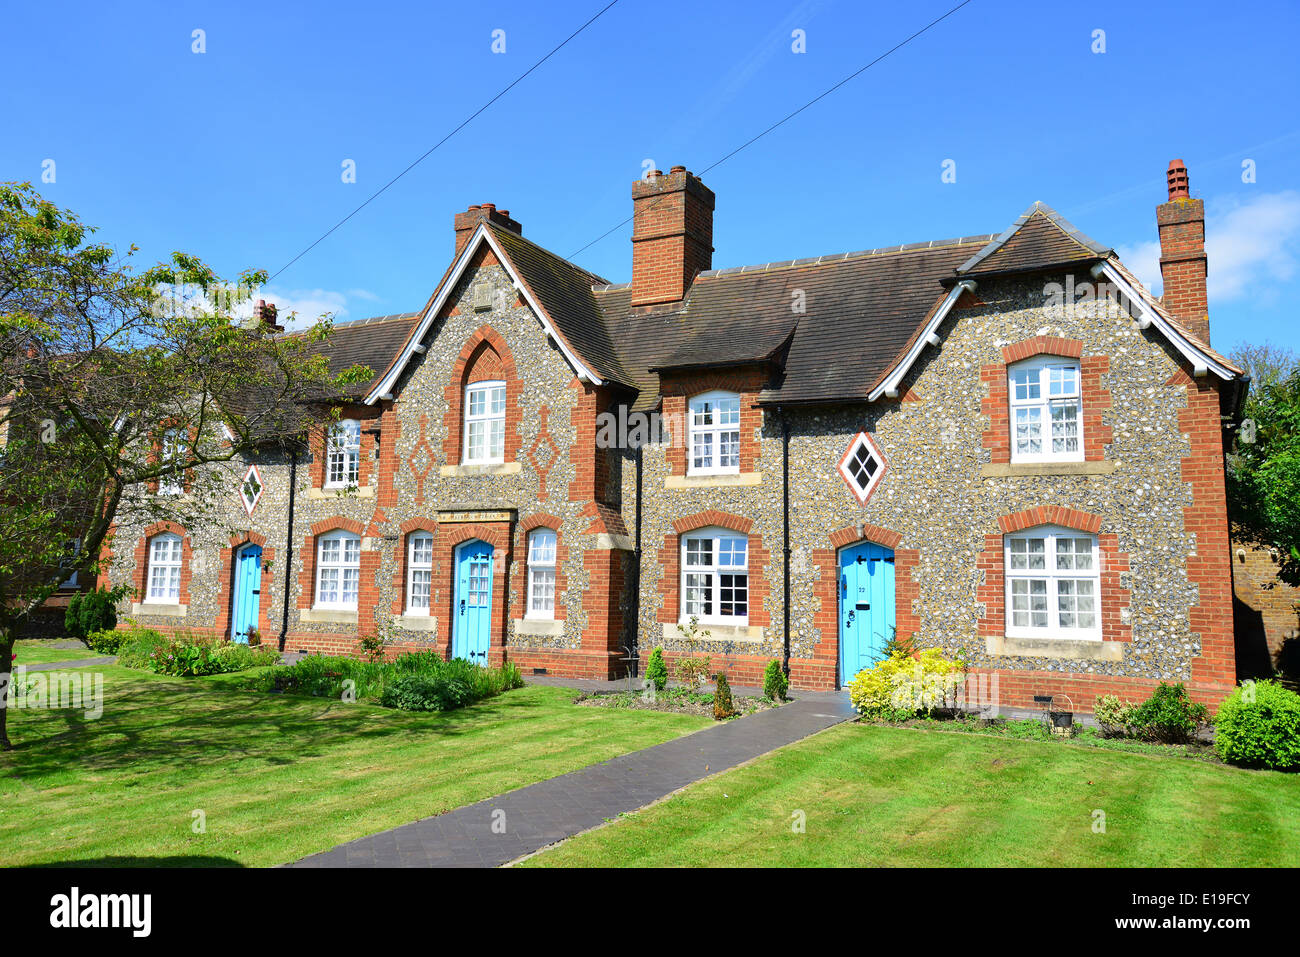 Stone cottages, Swakeley Road, Ickenham, London Borough of Hillingdon, Greater London, England, United Kingdom - Stock Image